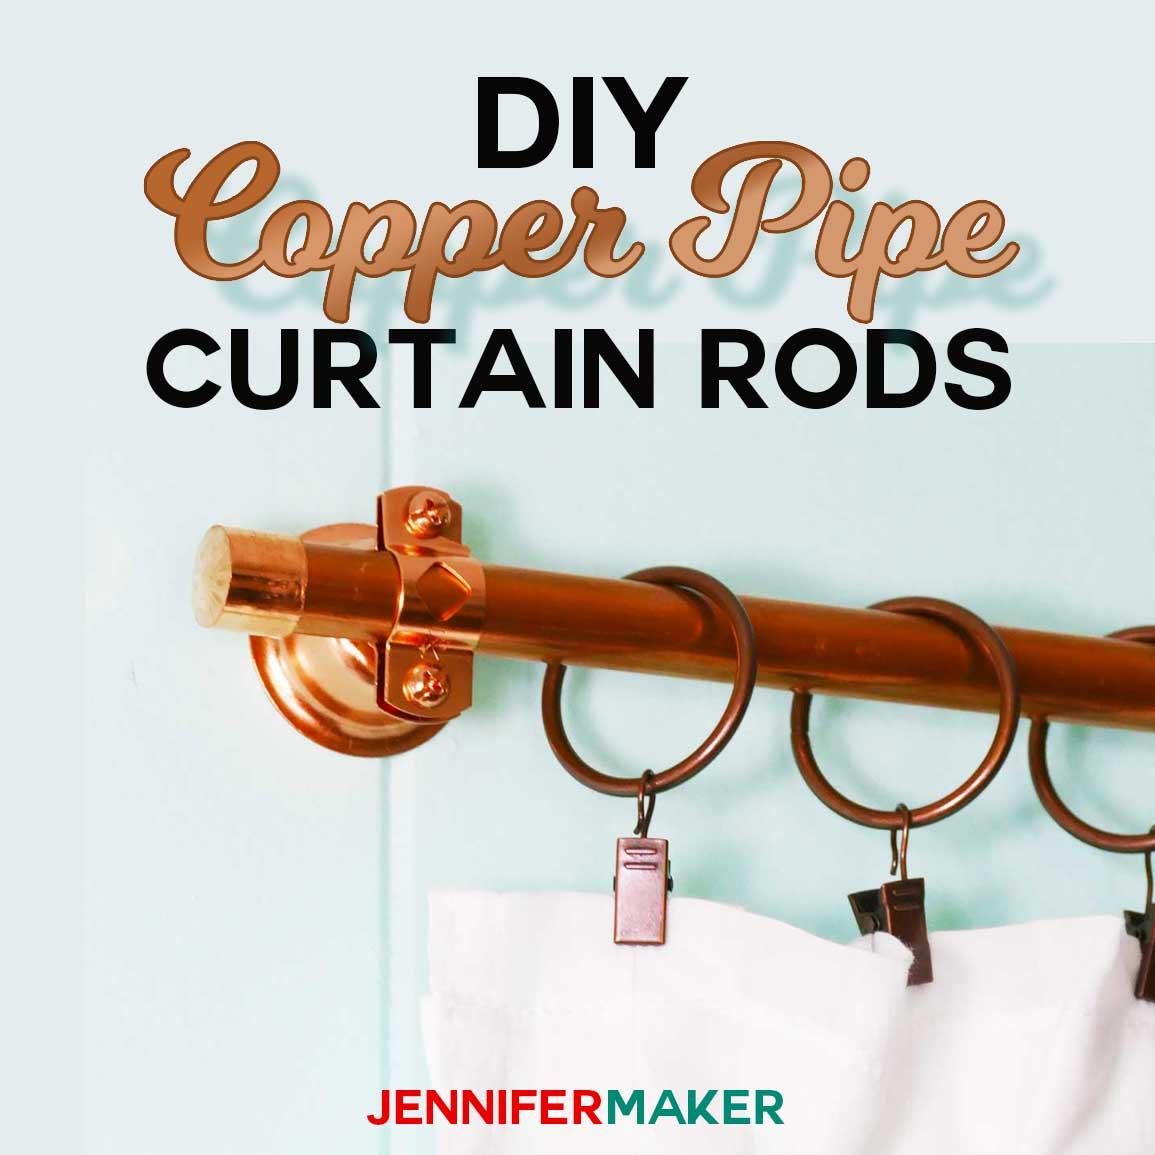 DIY Copper Pipe Curtain Rods For Under 15